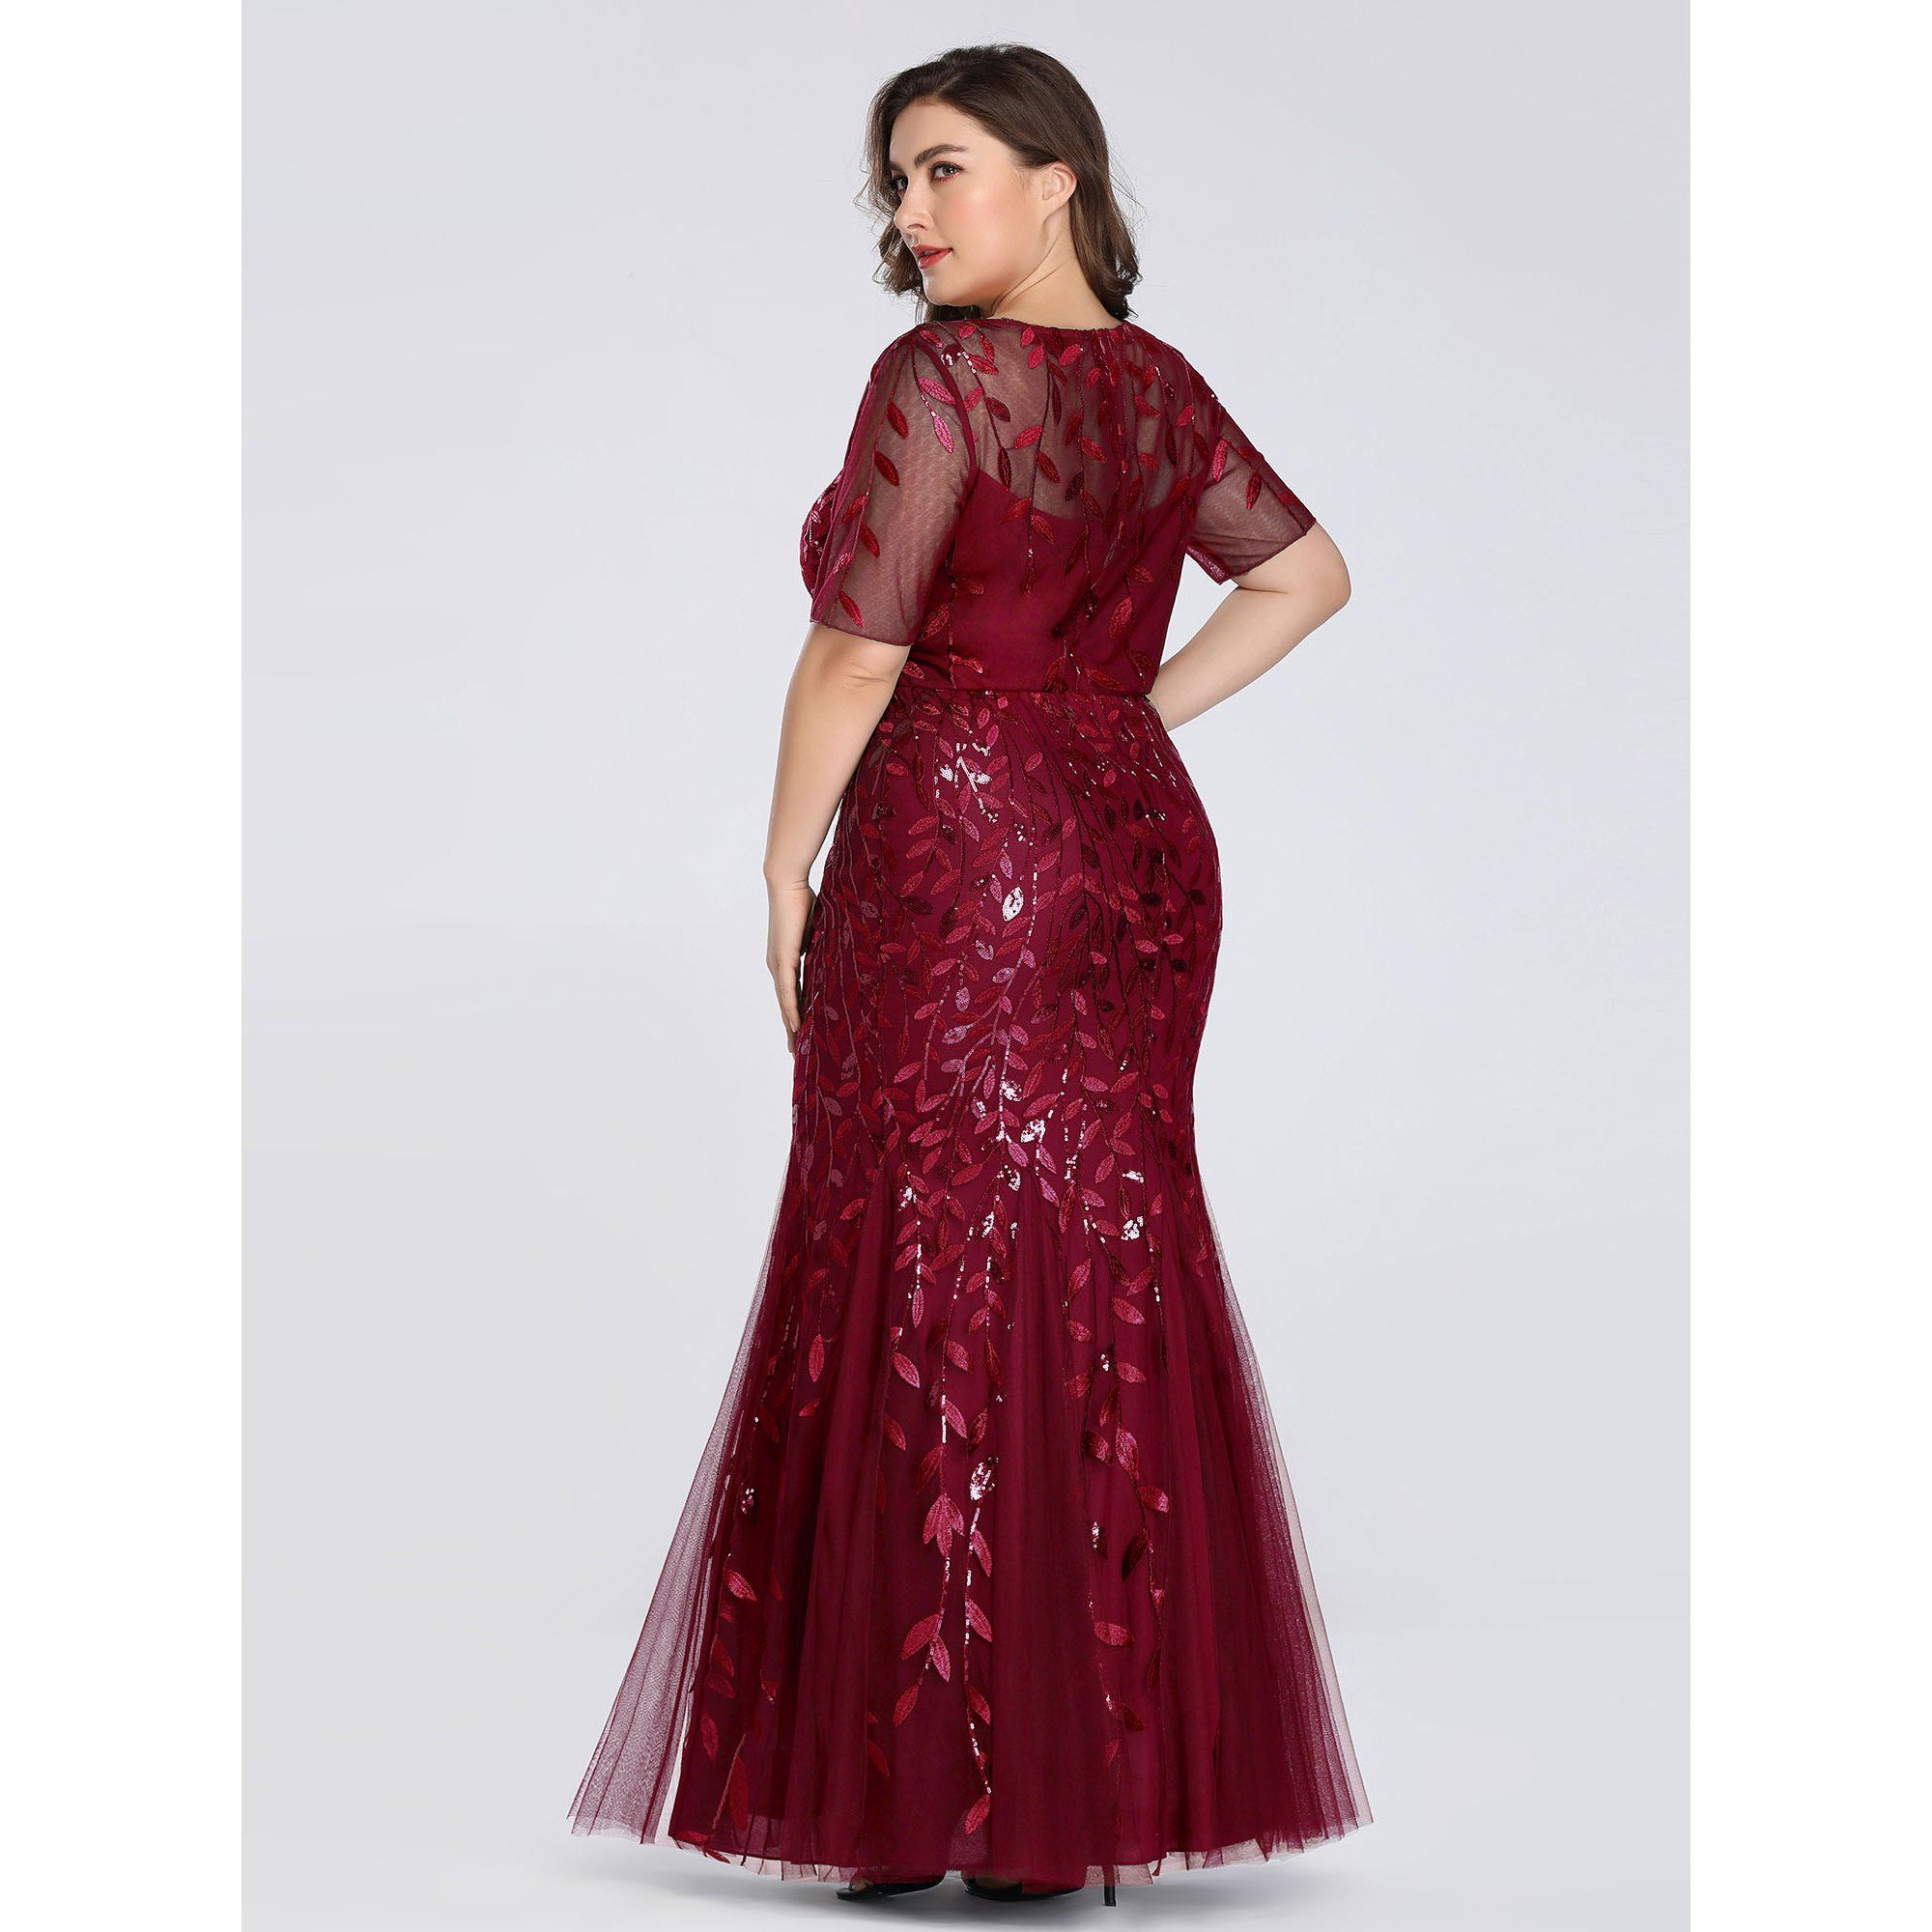 Ever Pretty Ever Pretty Womens Plus Size Long Evening Party Dresses For Women 77072 Burgundy Us18 In 2021 Long Party Gowns Evening Dresses Mermaid Evening Dresses [ 2000 x 2000 Pixel ]